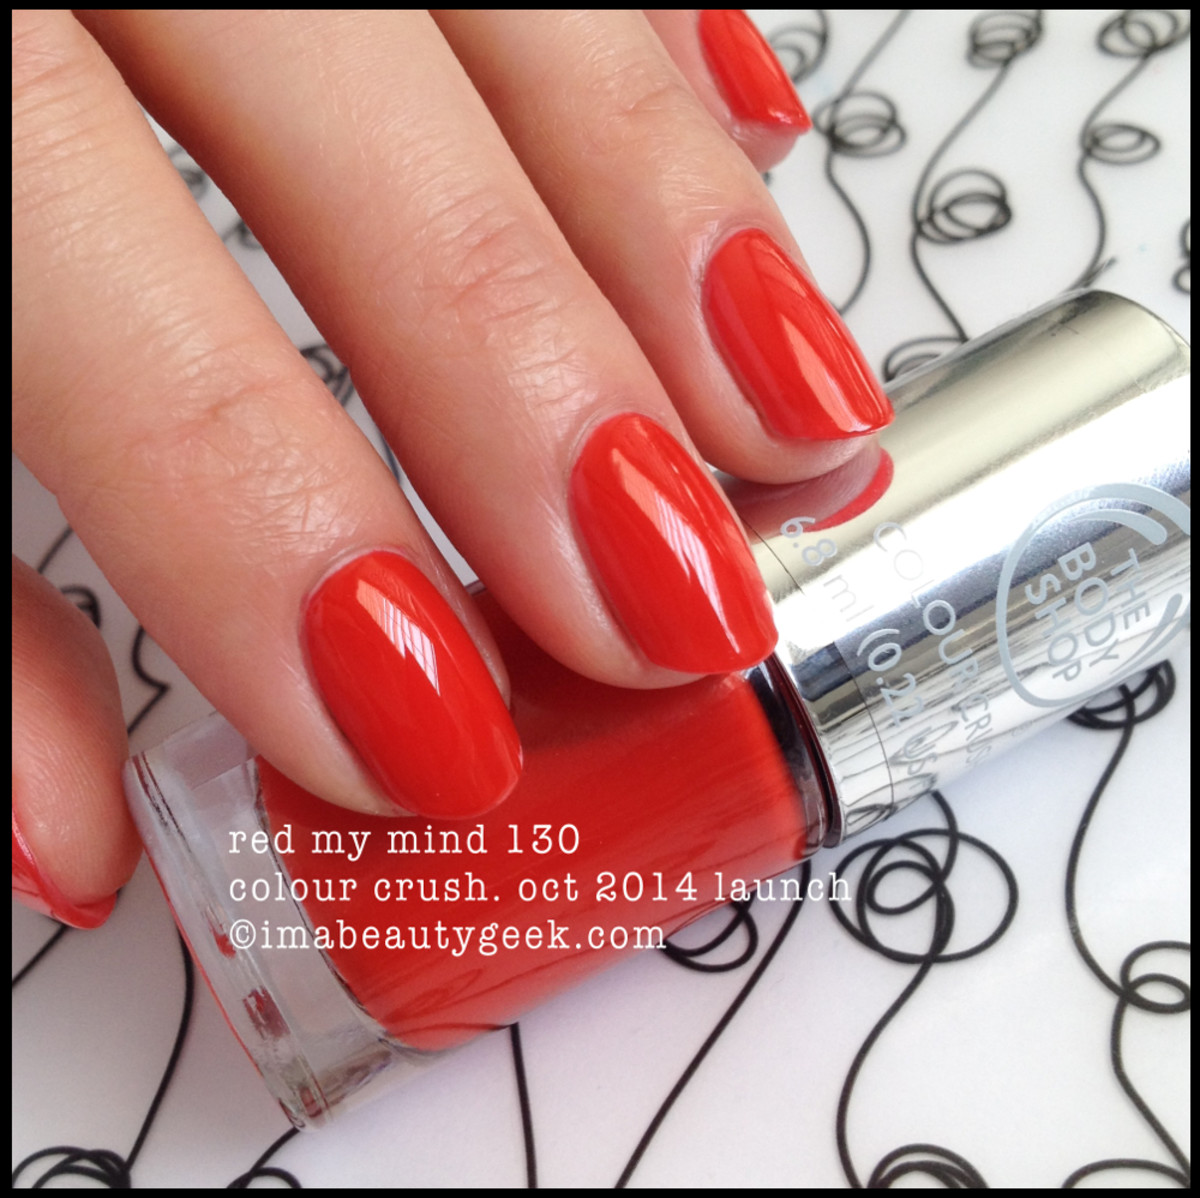 Body Shop Red My Mind 130 Colour Crush Polish